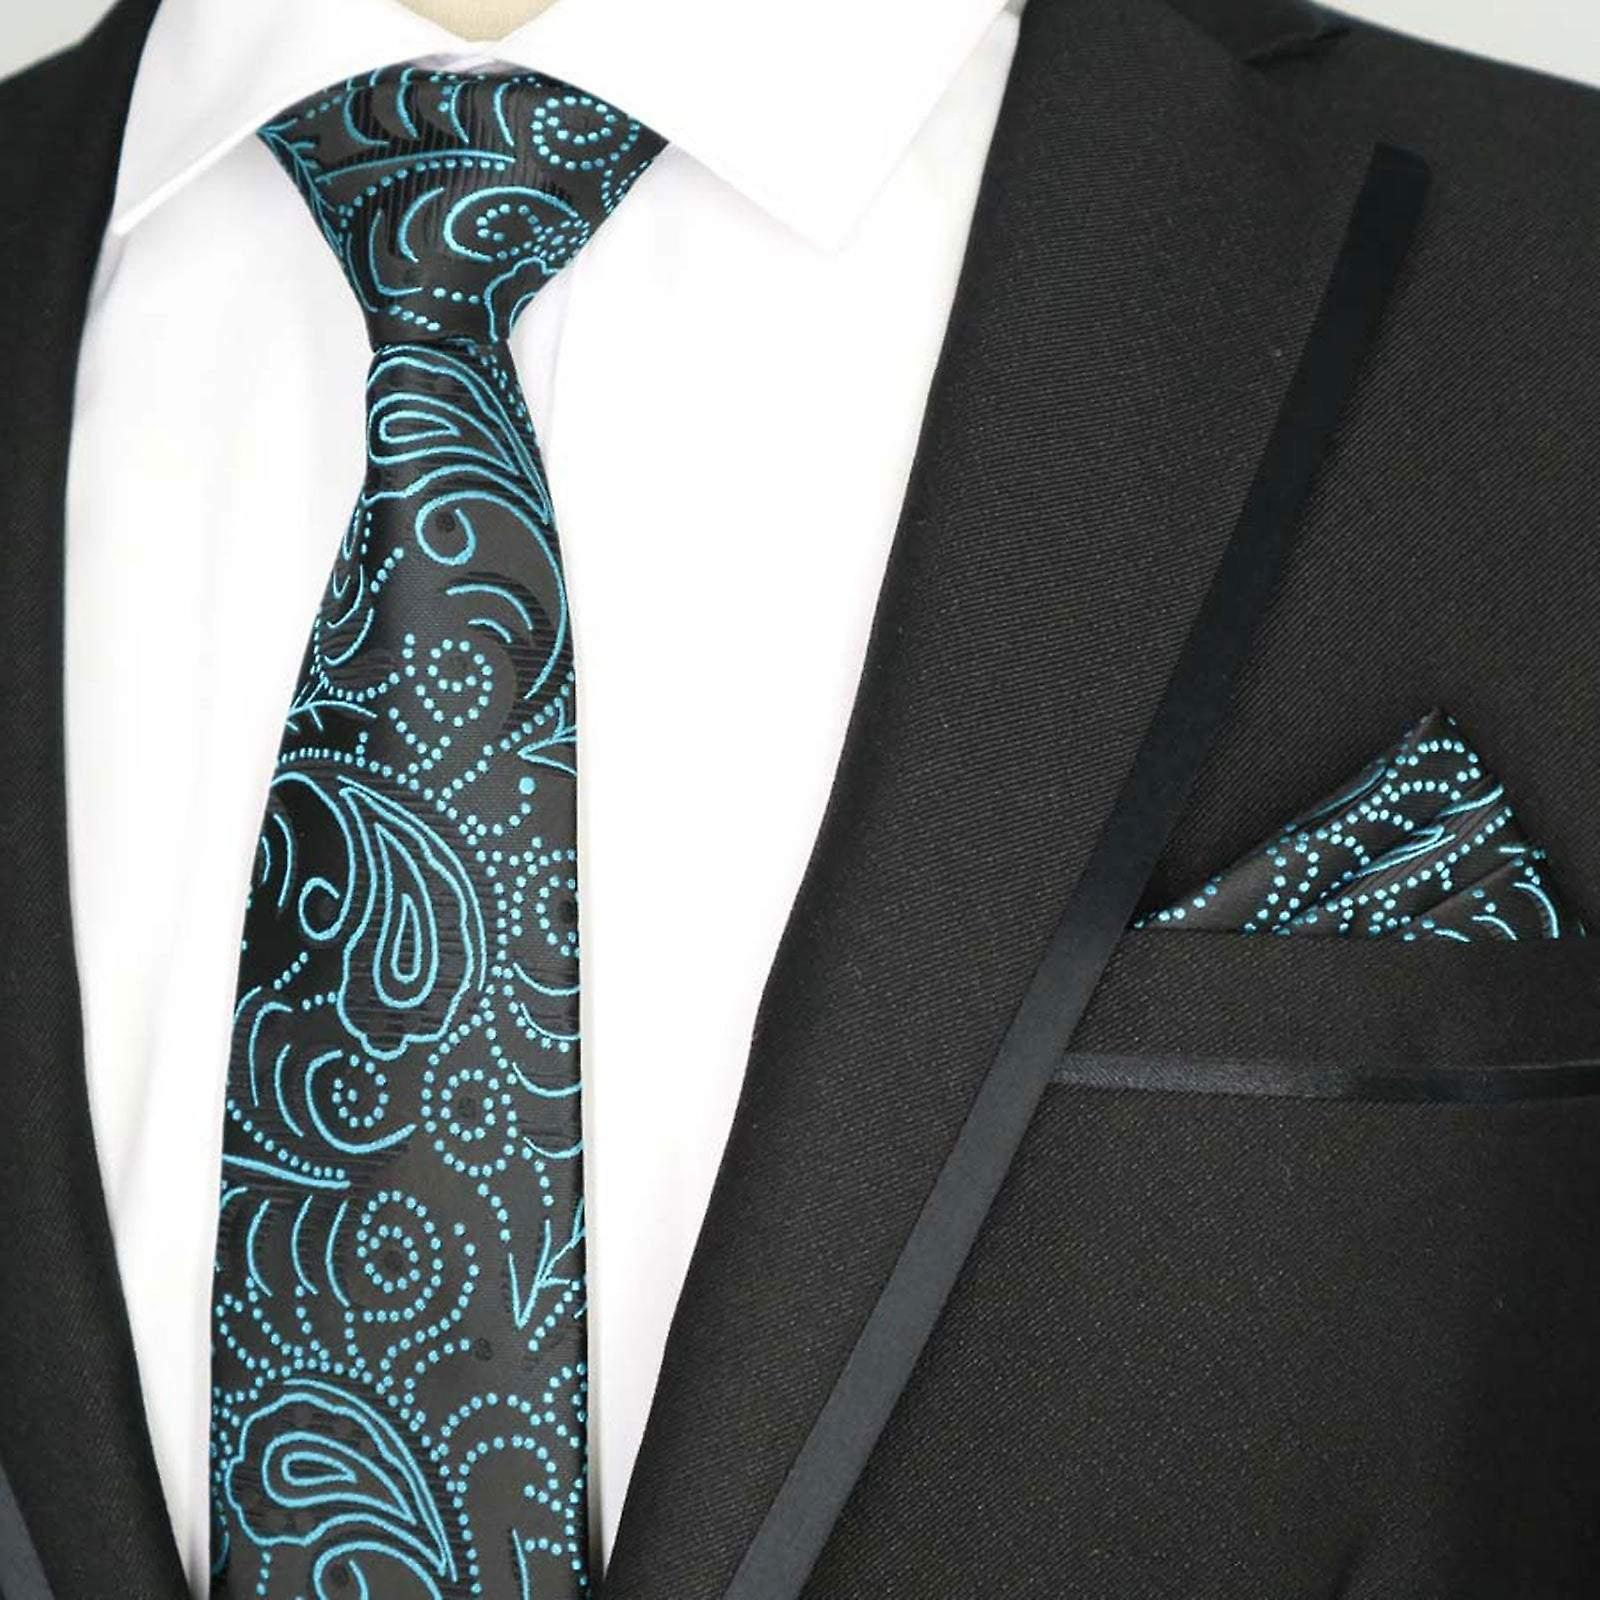 Black & turquoise pattern party pocket square & tie